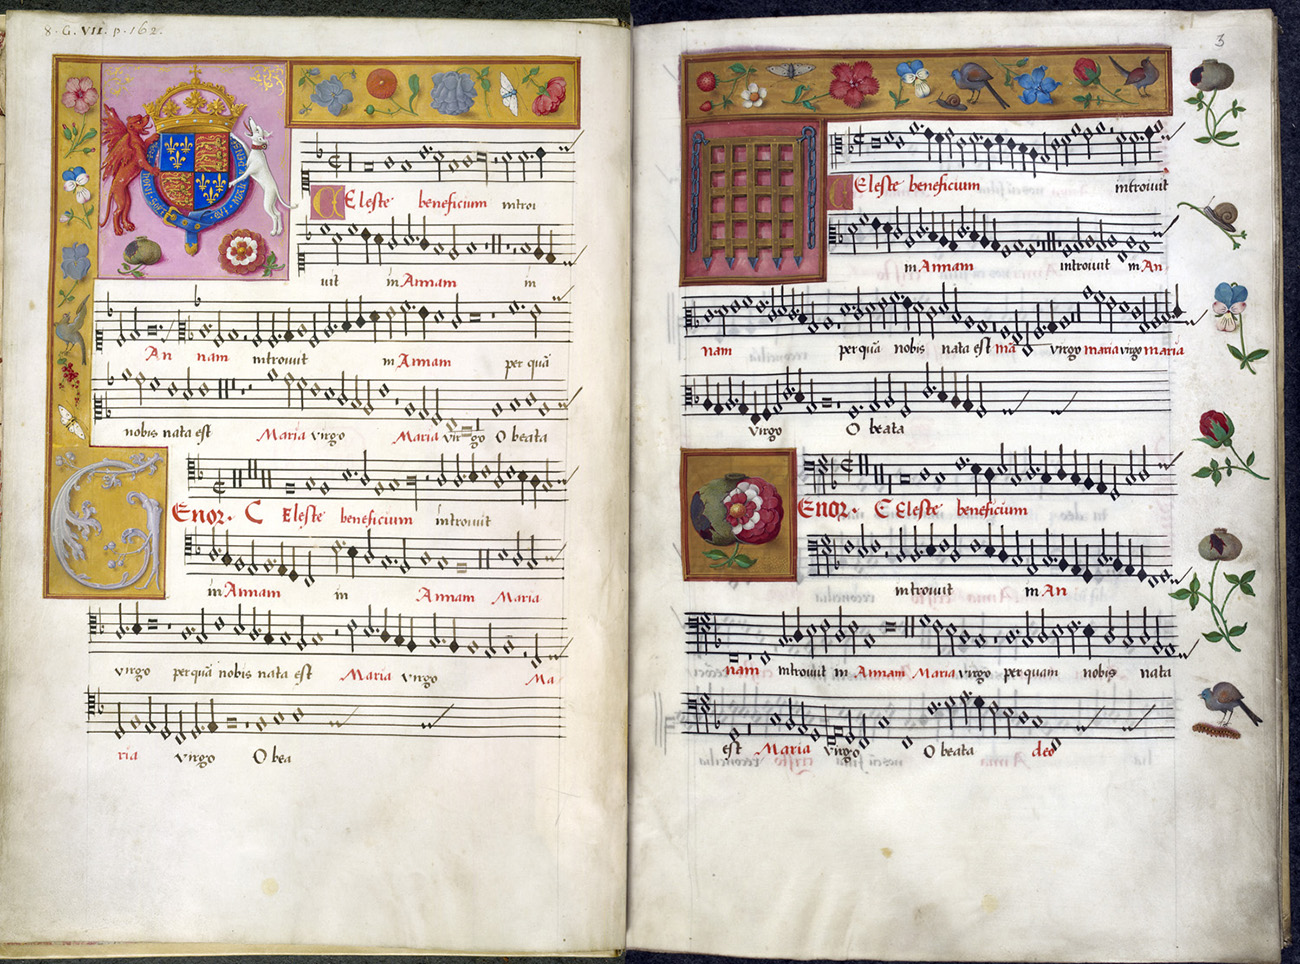 Renaissance era musical book.